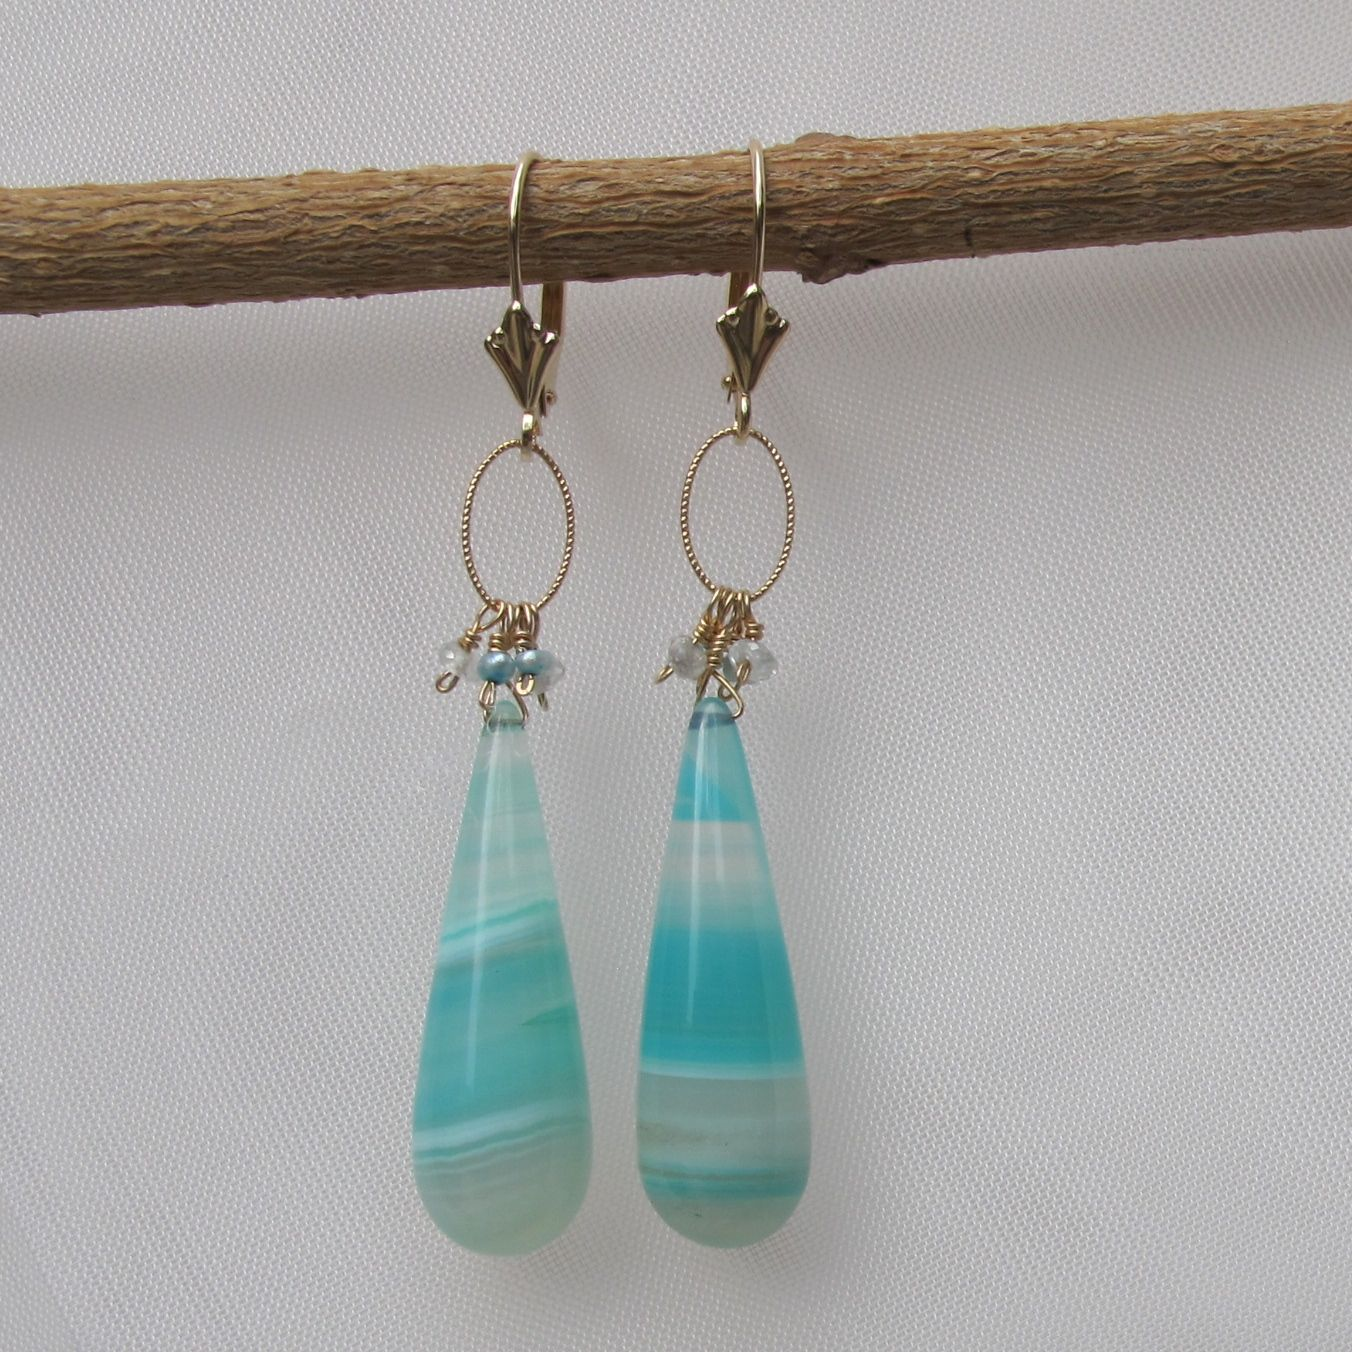 Elongated calcite drop earrings in 14K gold with pearl and aquamarine accents. 3